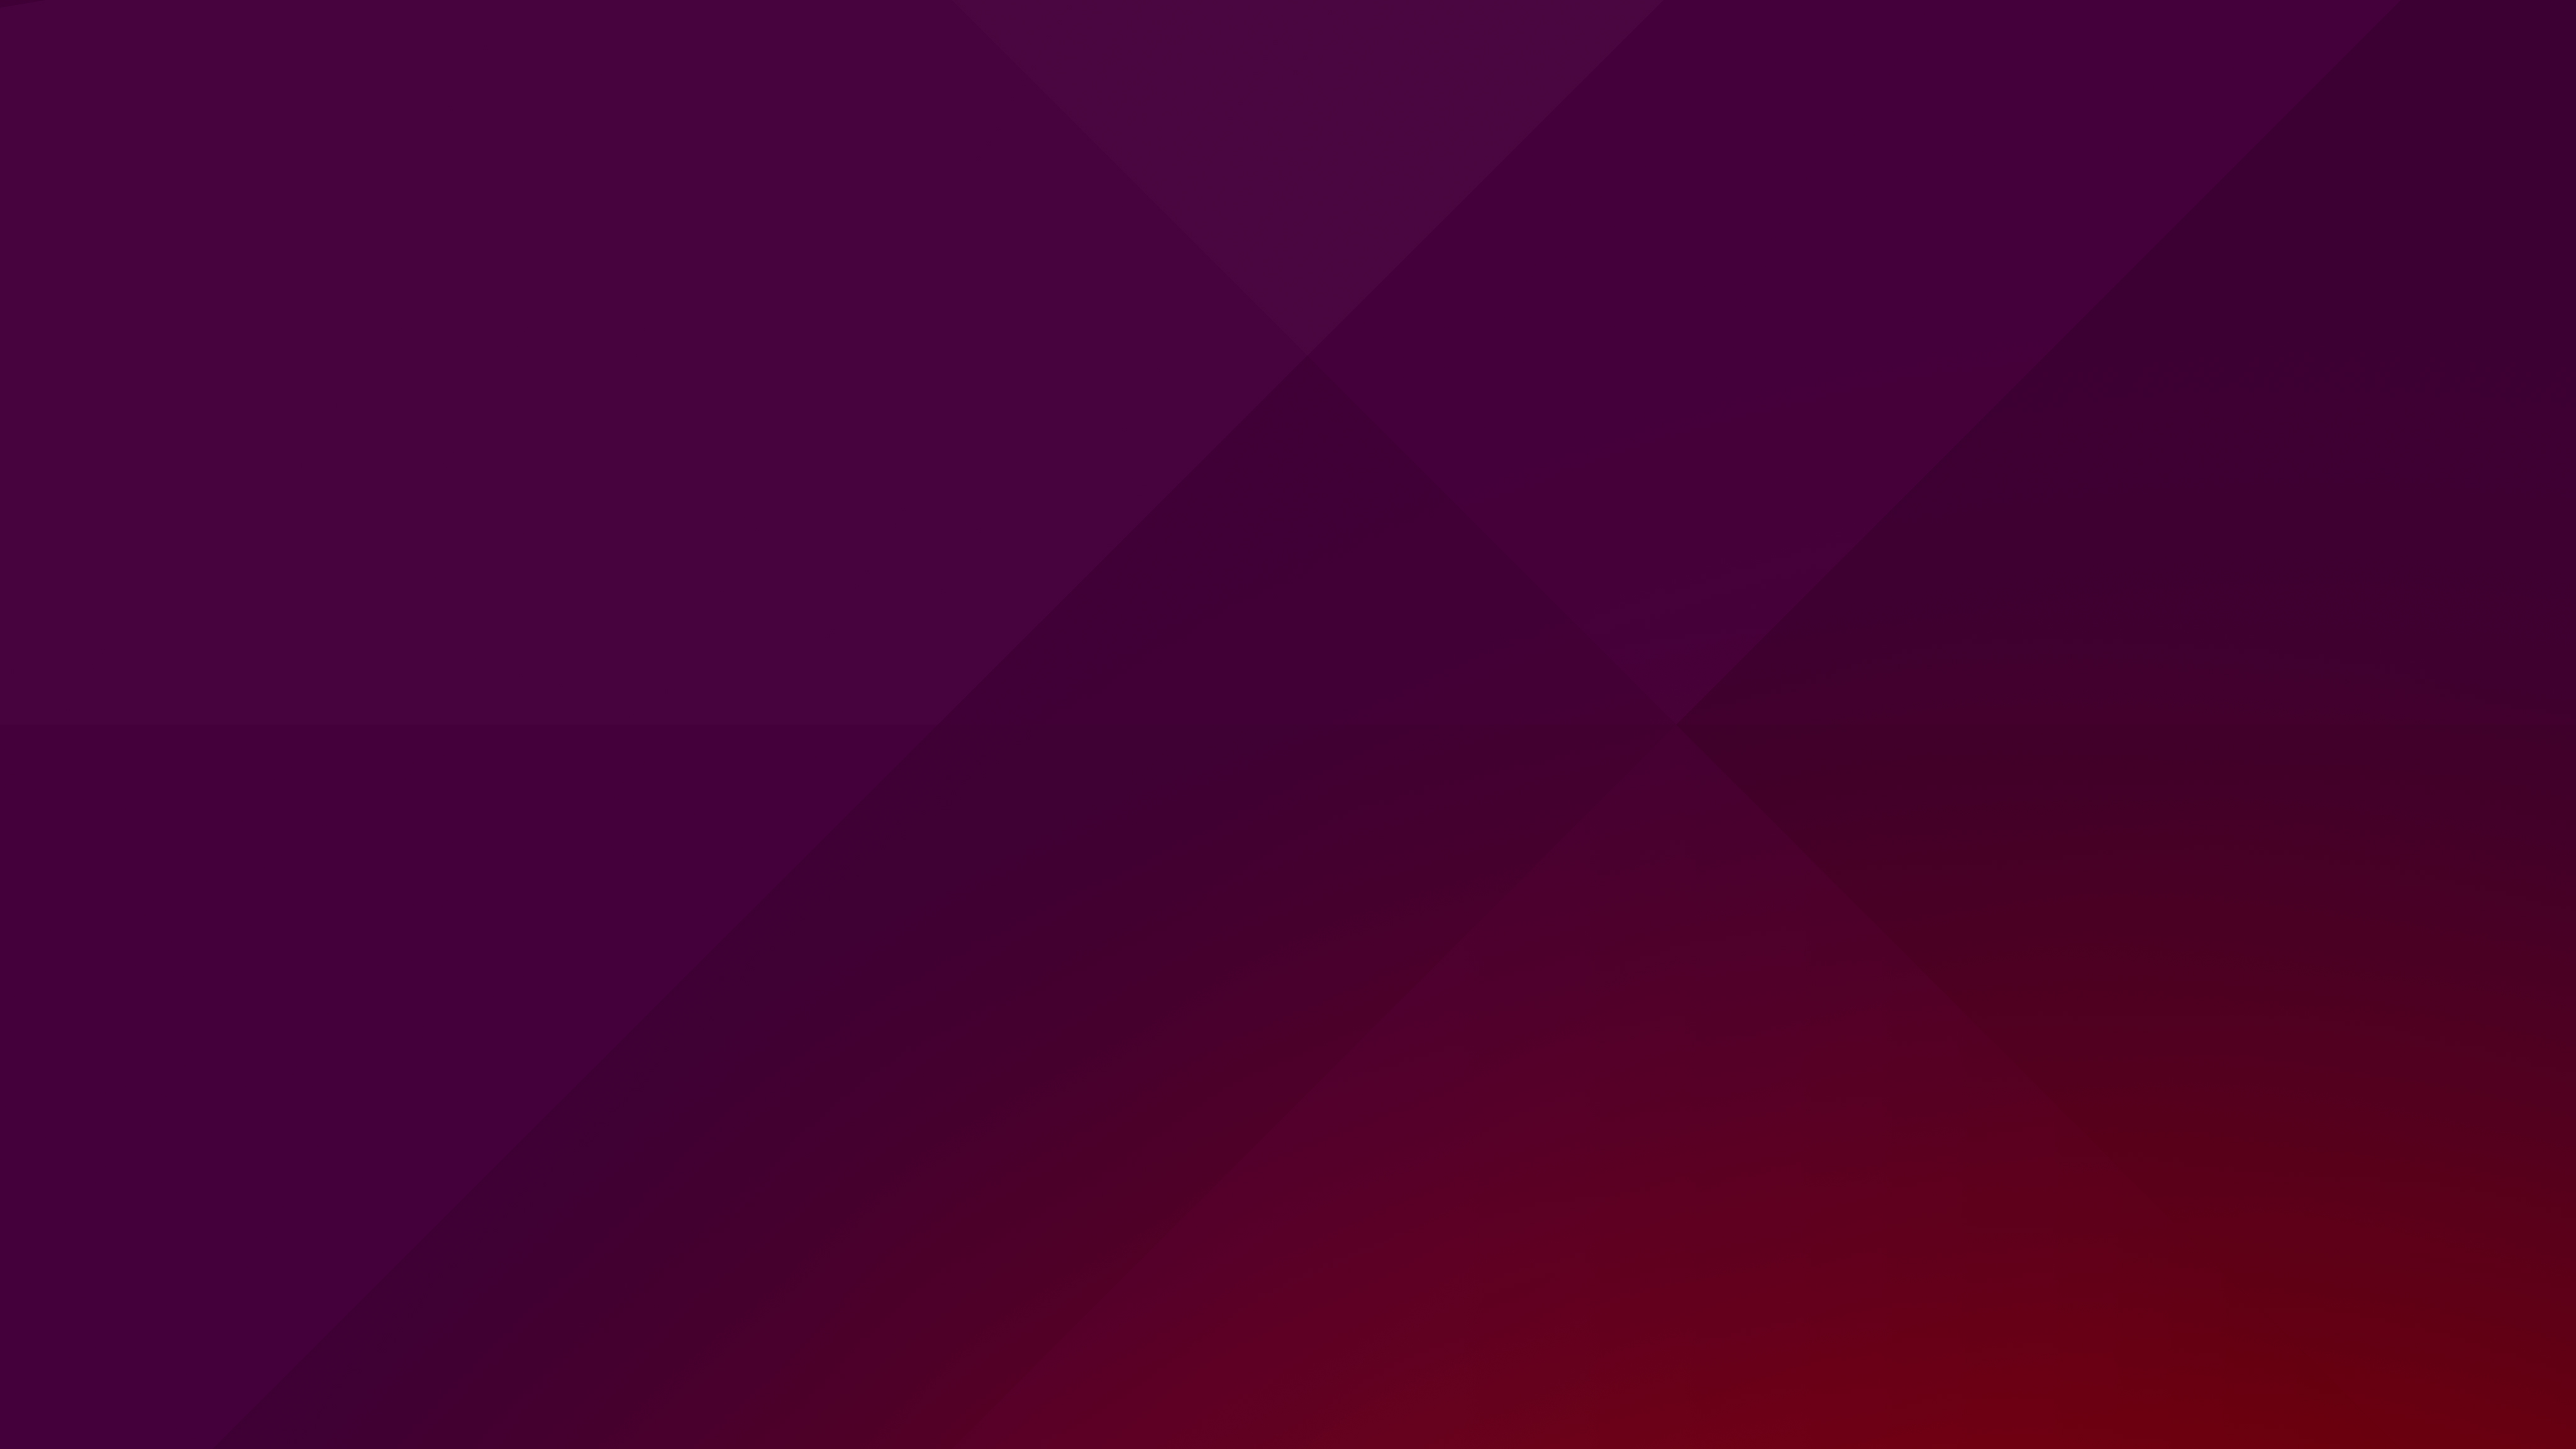 New Ubuntu 1510 Default Wallpaper Revealed 4096x2304